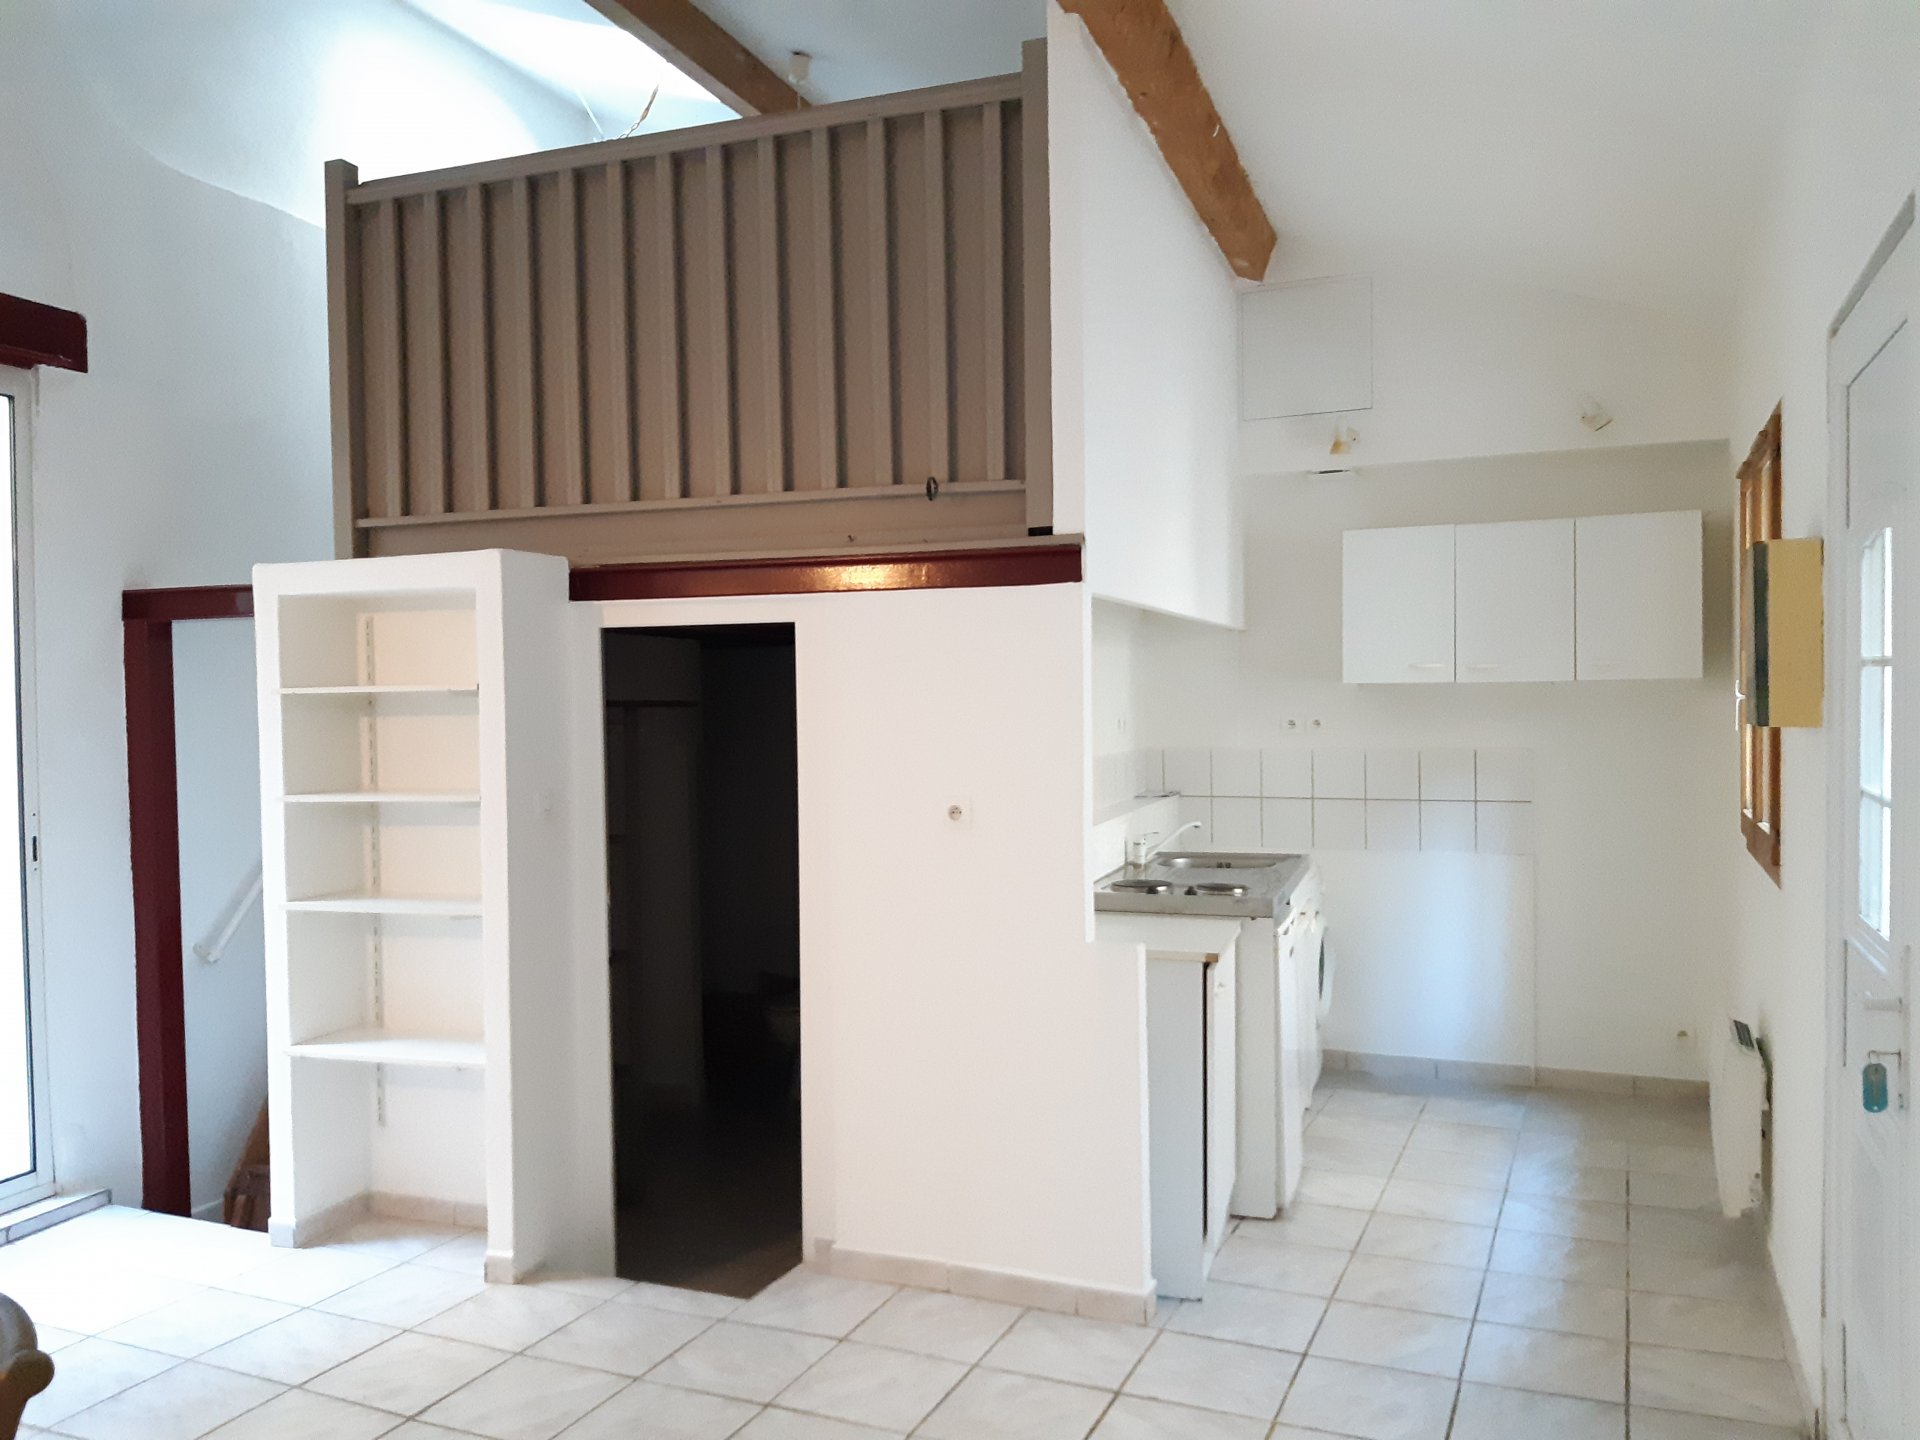 Location Appartement TARASCON Mandat : 0849